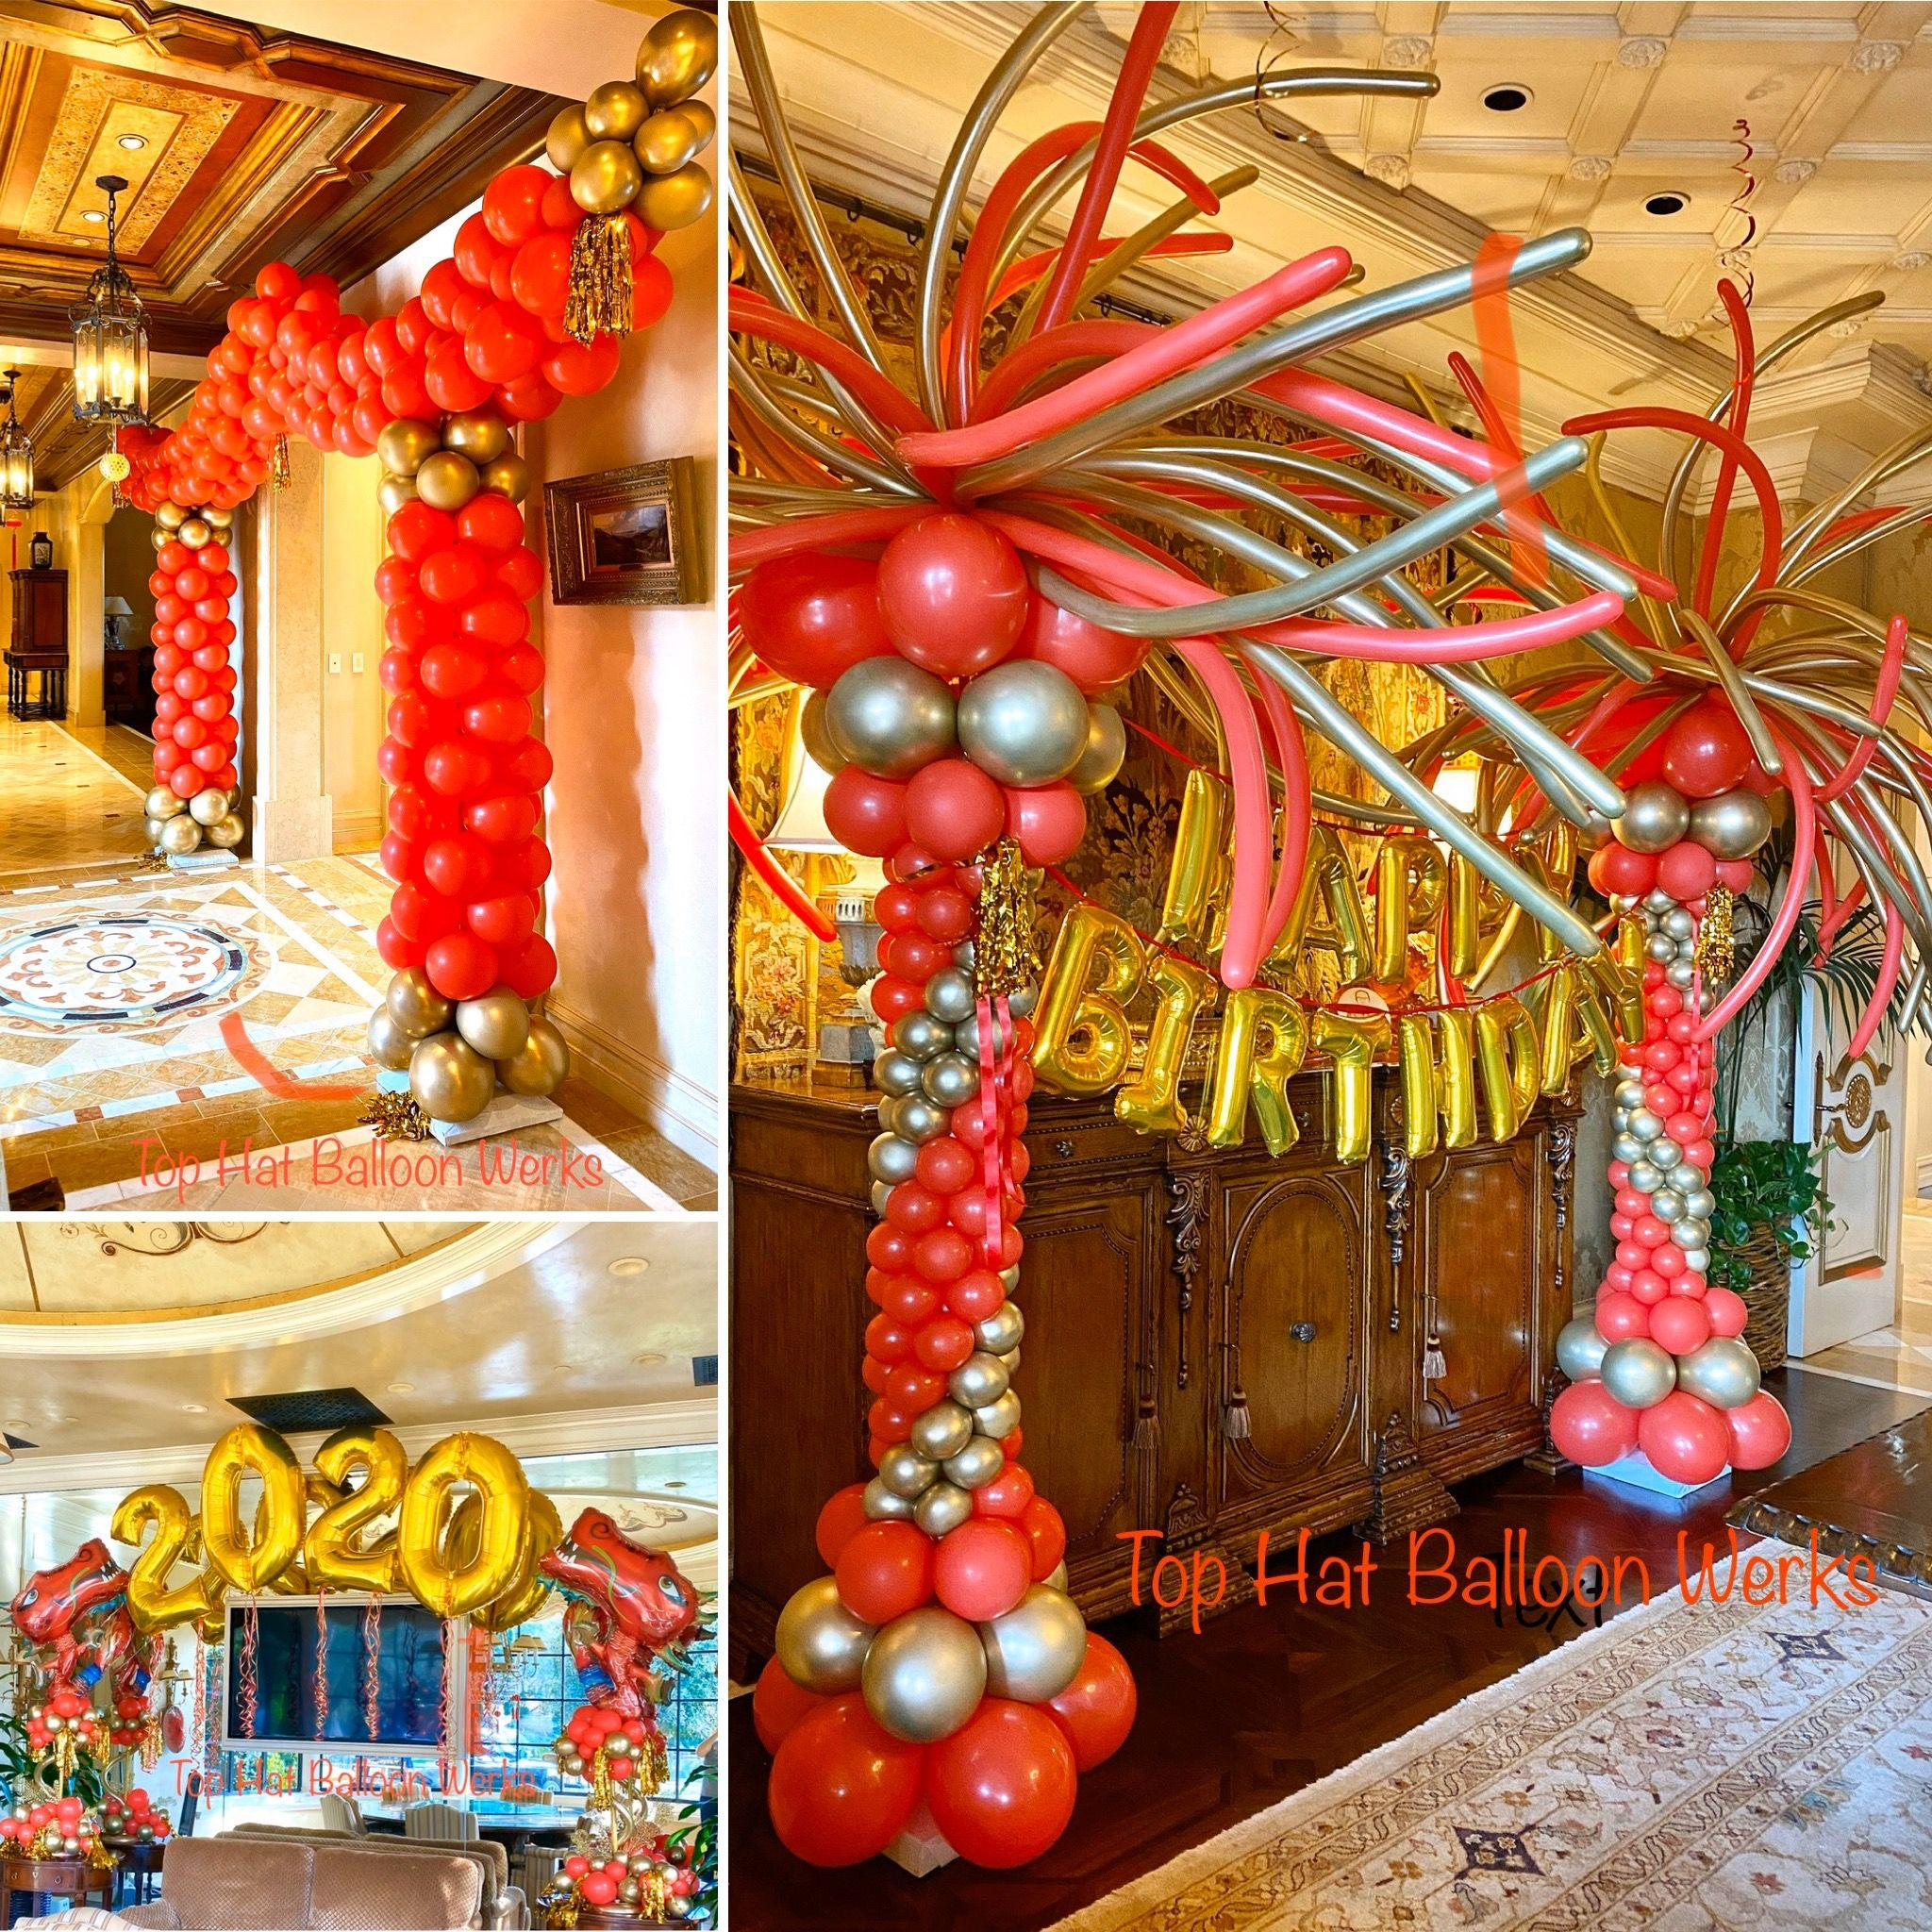 Chinese New Year 2020 in 2020 | Balloon arch, Balloon ...